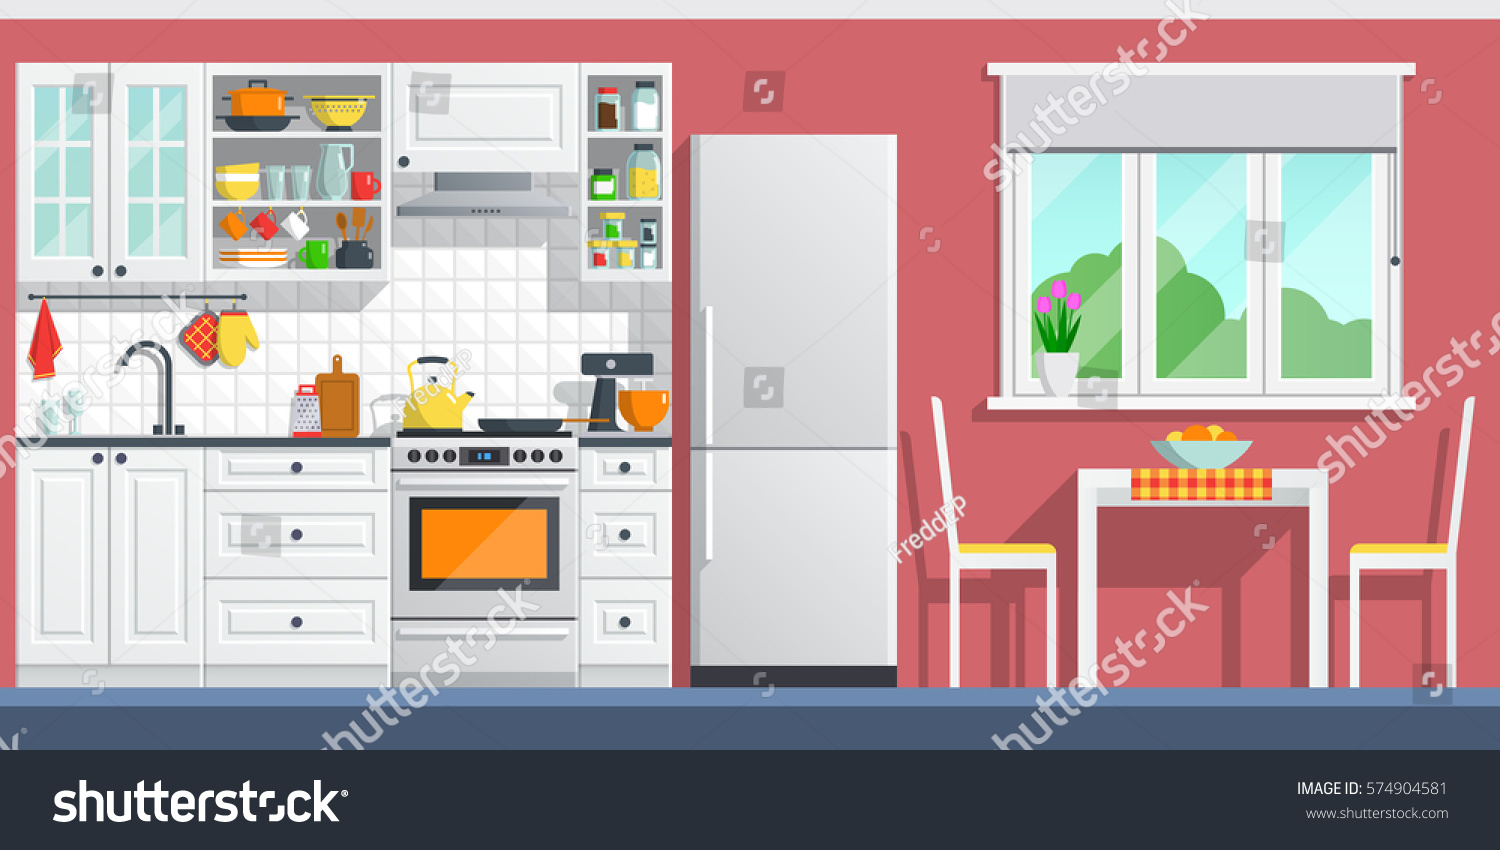 Cartoon kitchen with cabinets and window vector art illustration -  Vectors Illustrations Footage Music Kitchen Interior With Table Stove Cupboard Dishes And Fridge Flat Home Art